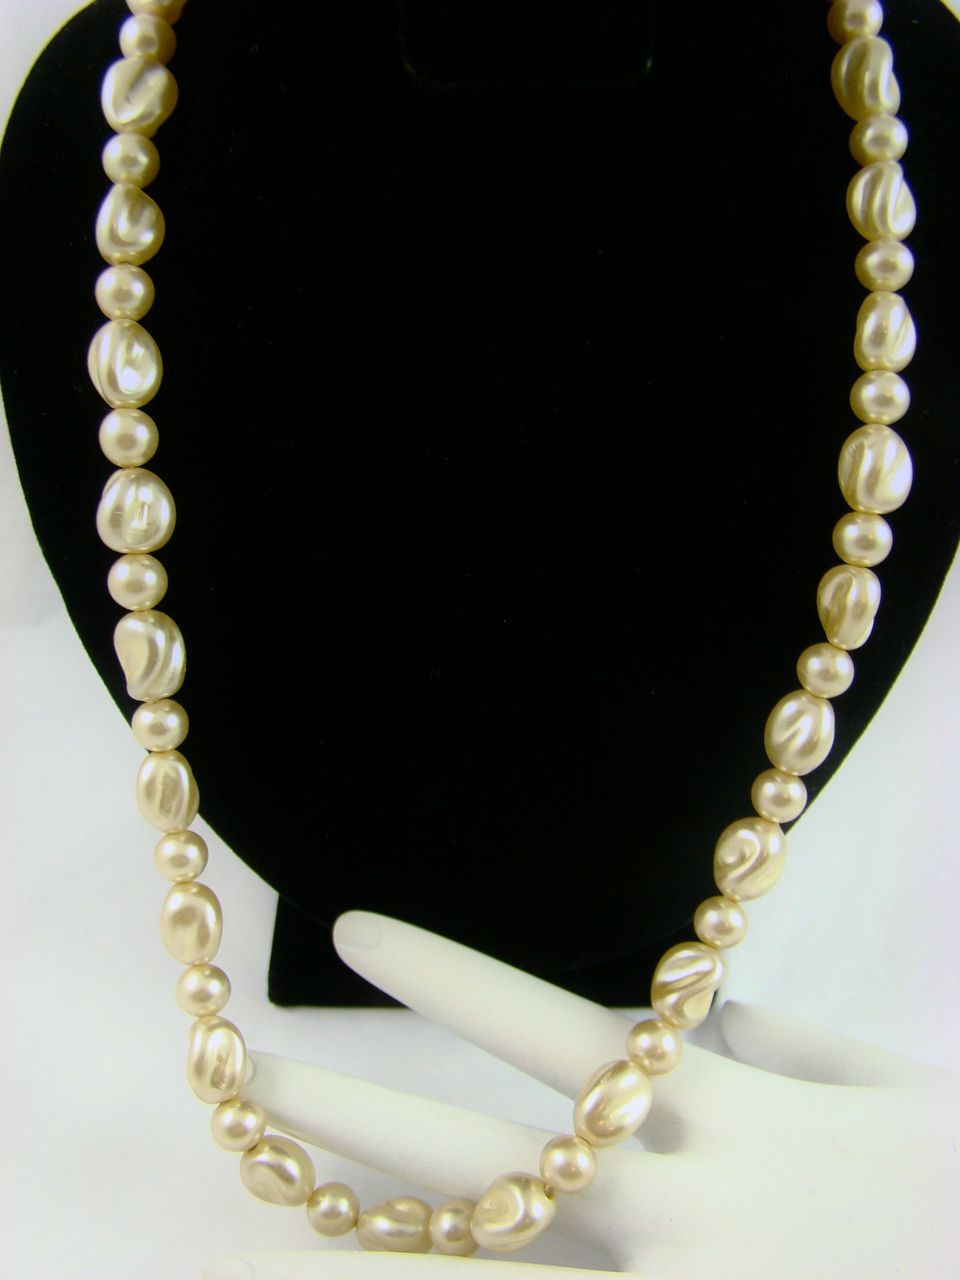 Lustrous Creamy Ivory Baroque Imitation Pearl Necklace